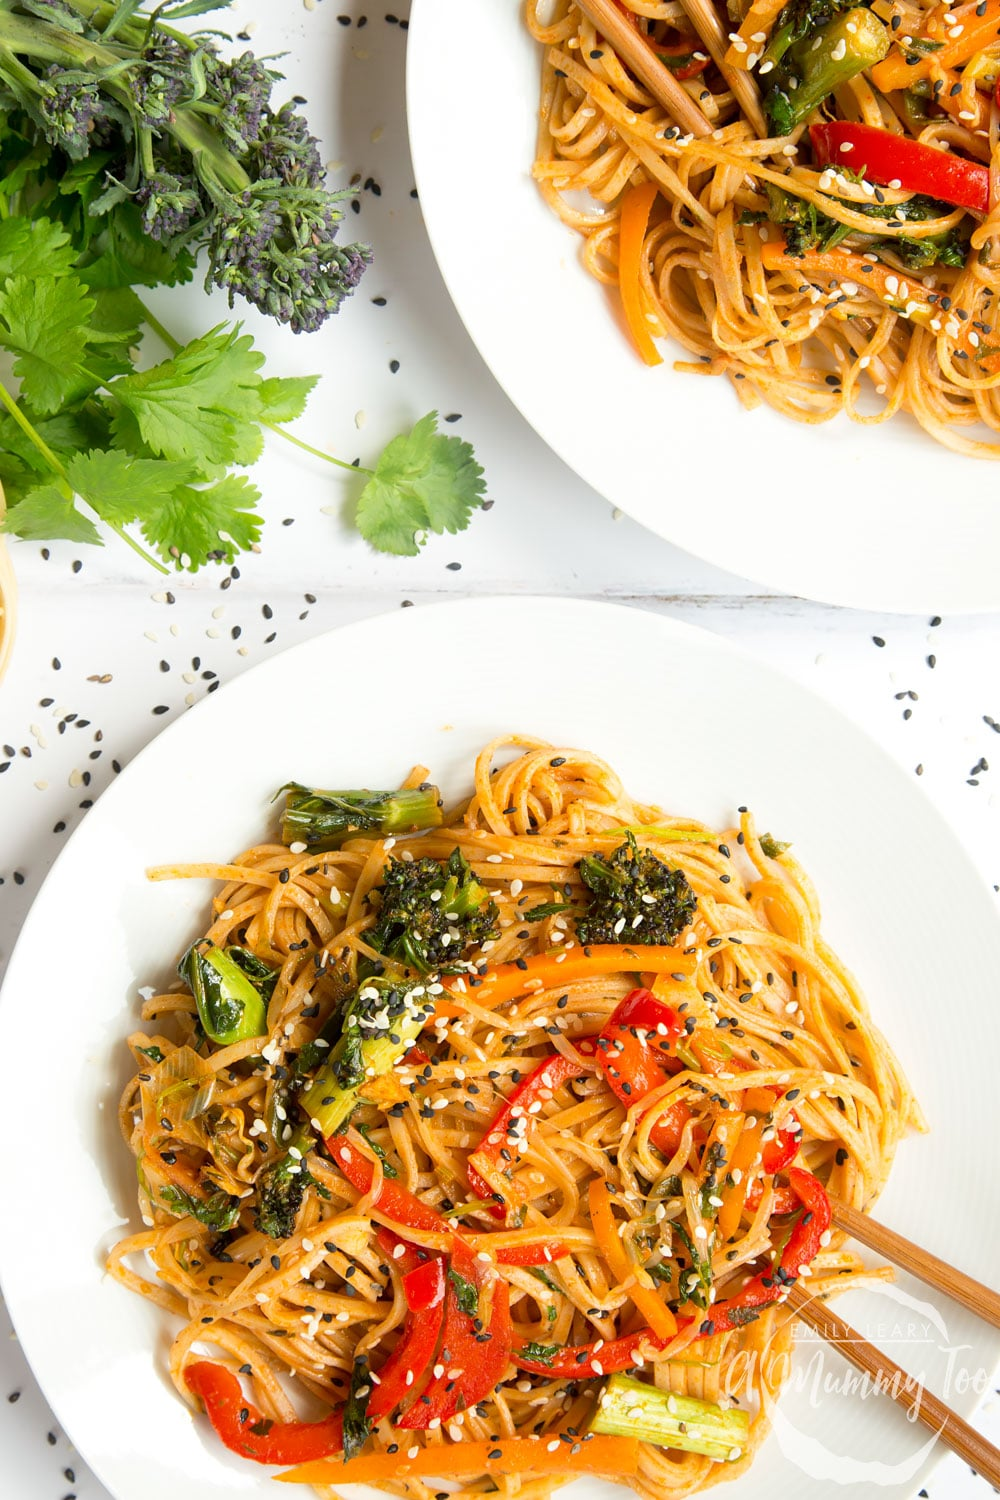 Delicious, tangy sweet and sour ketchup noodle stir fry shown served in bowls on a table ready to enjoy!